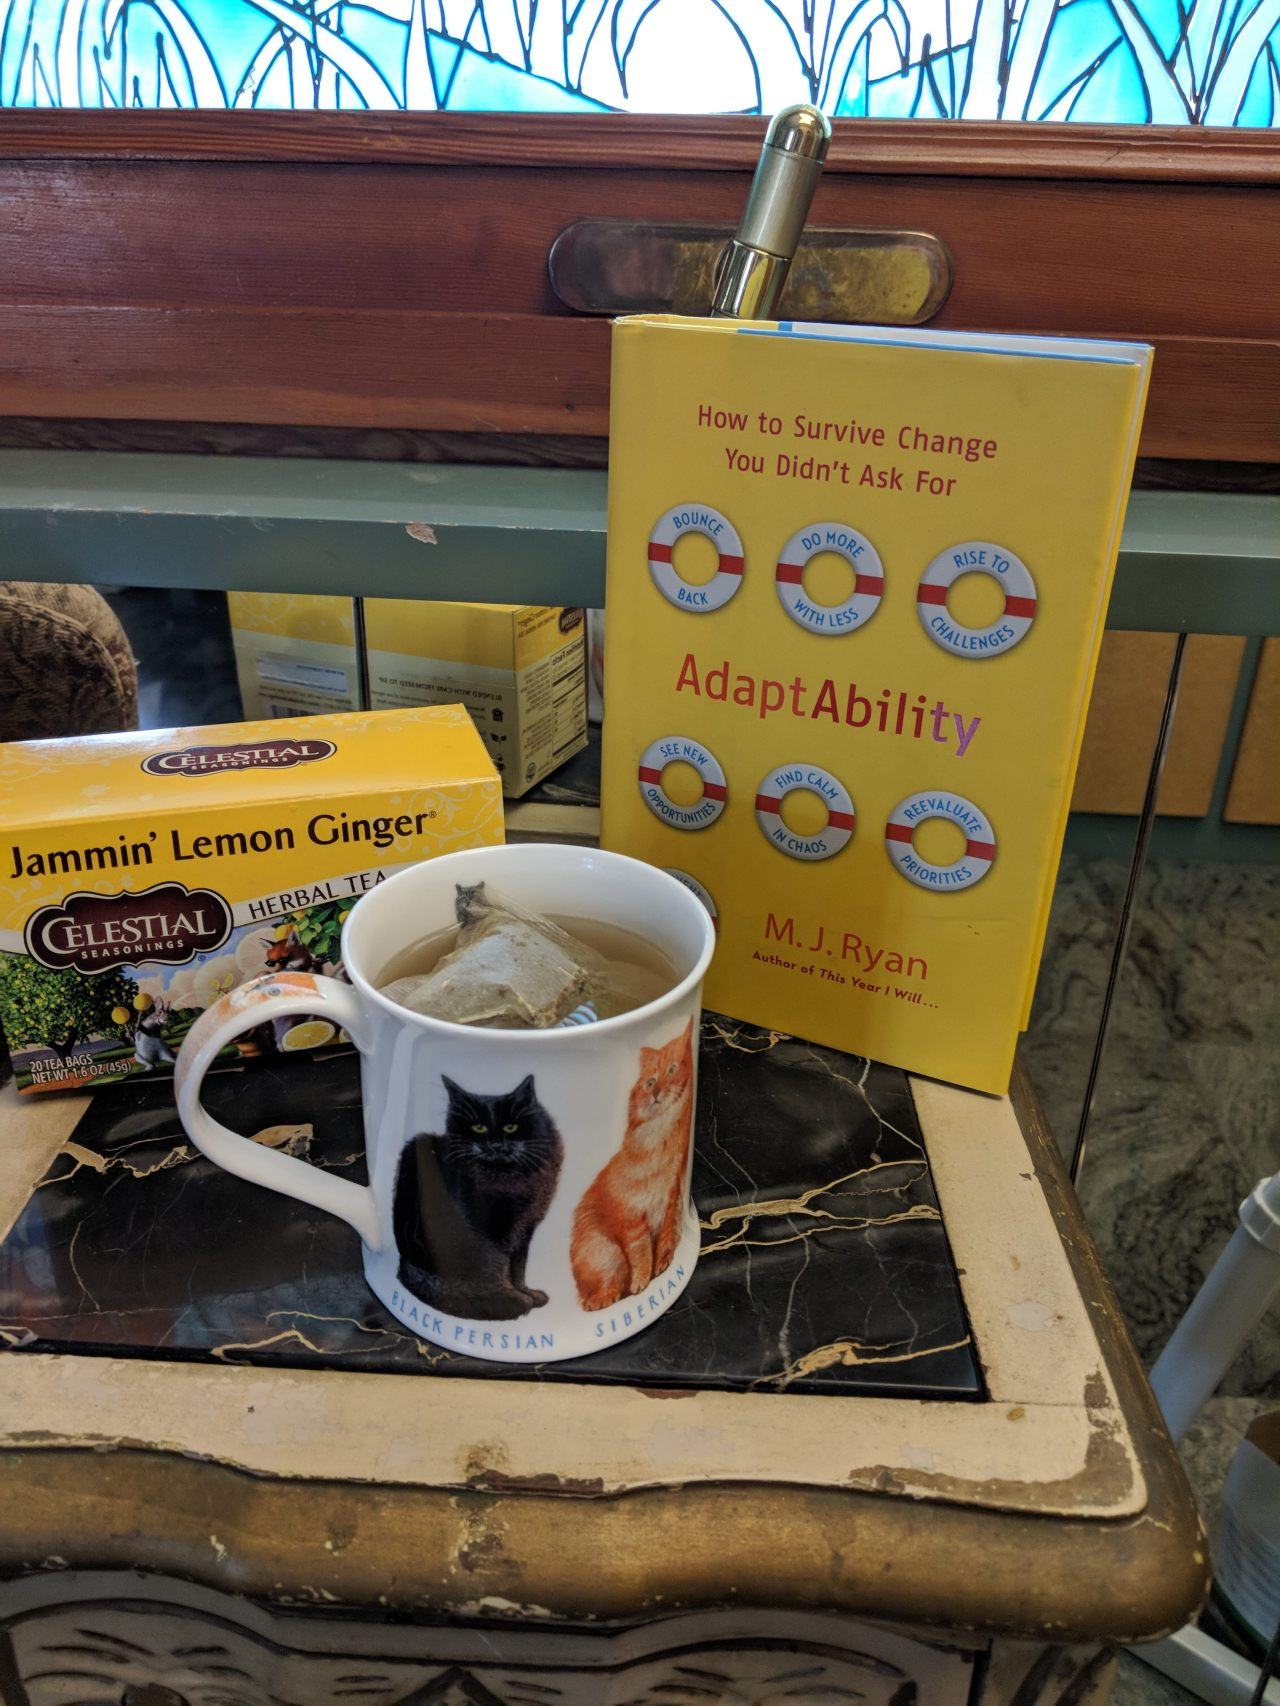 Tea & Books – 'AdaptAbility' and Jammin Lemon Ginger Tea